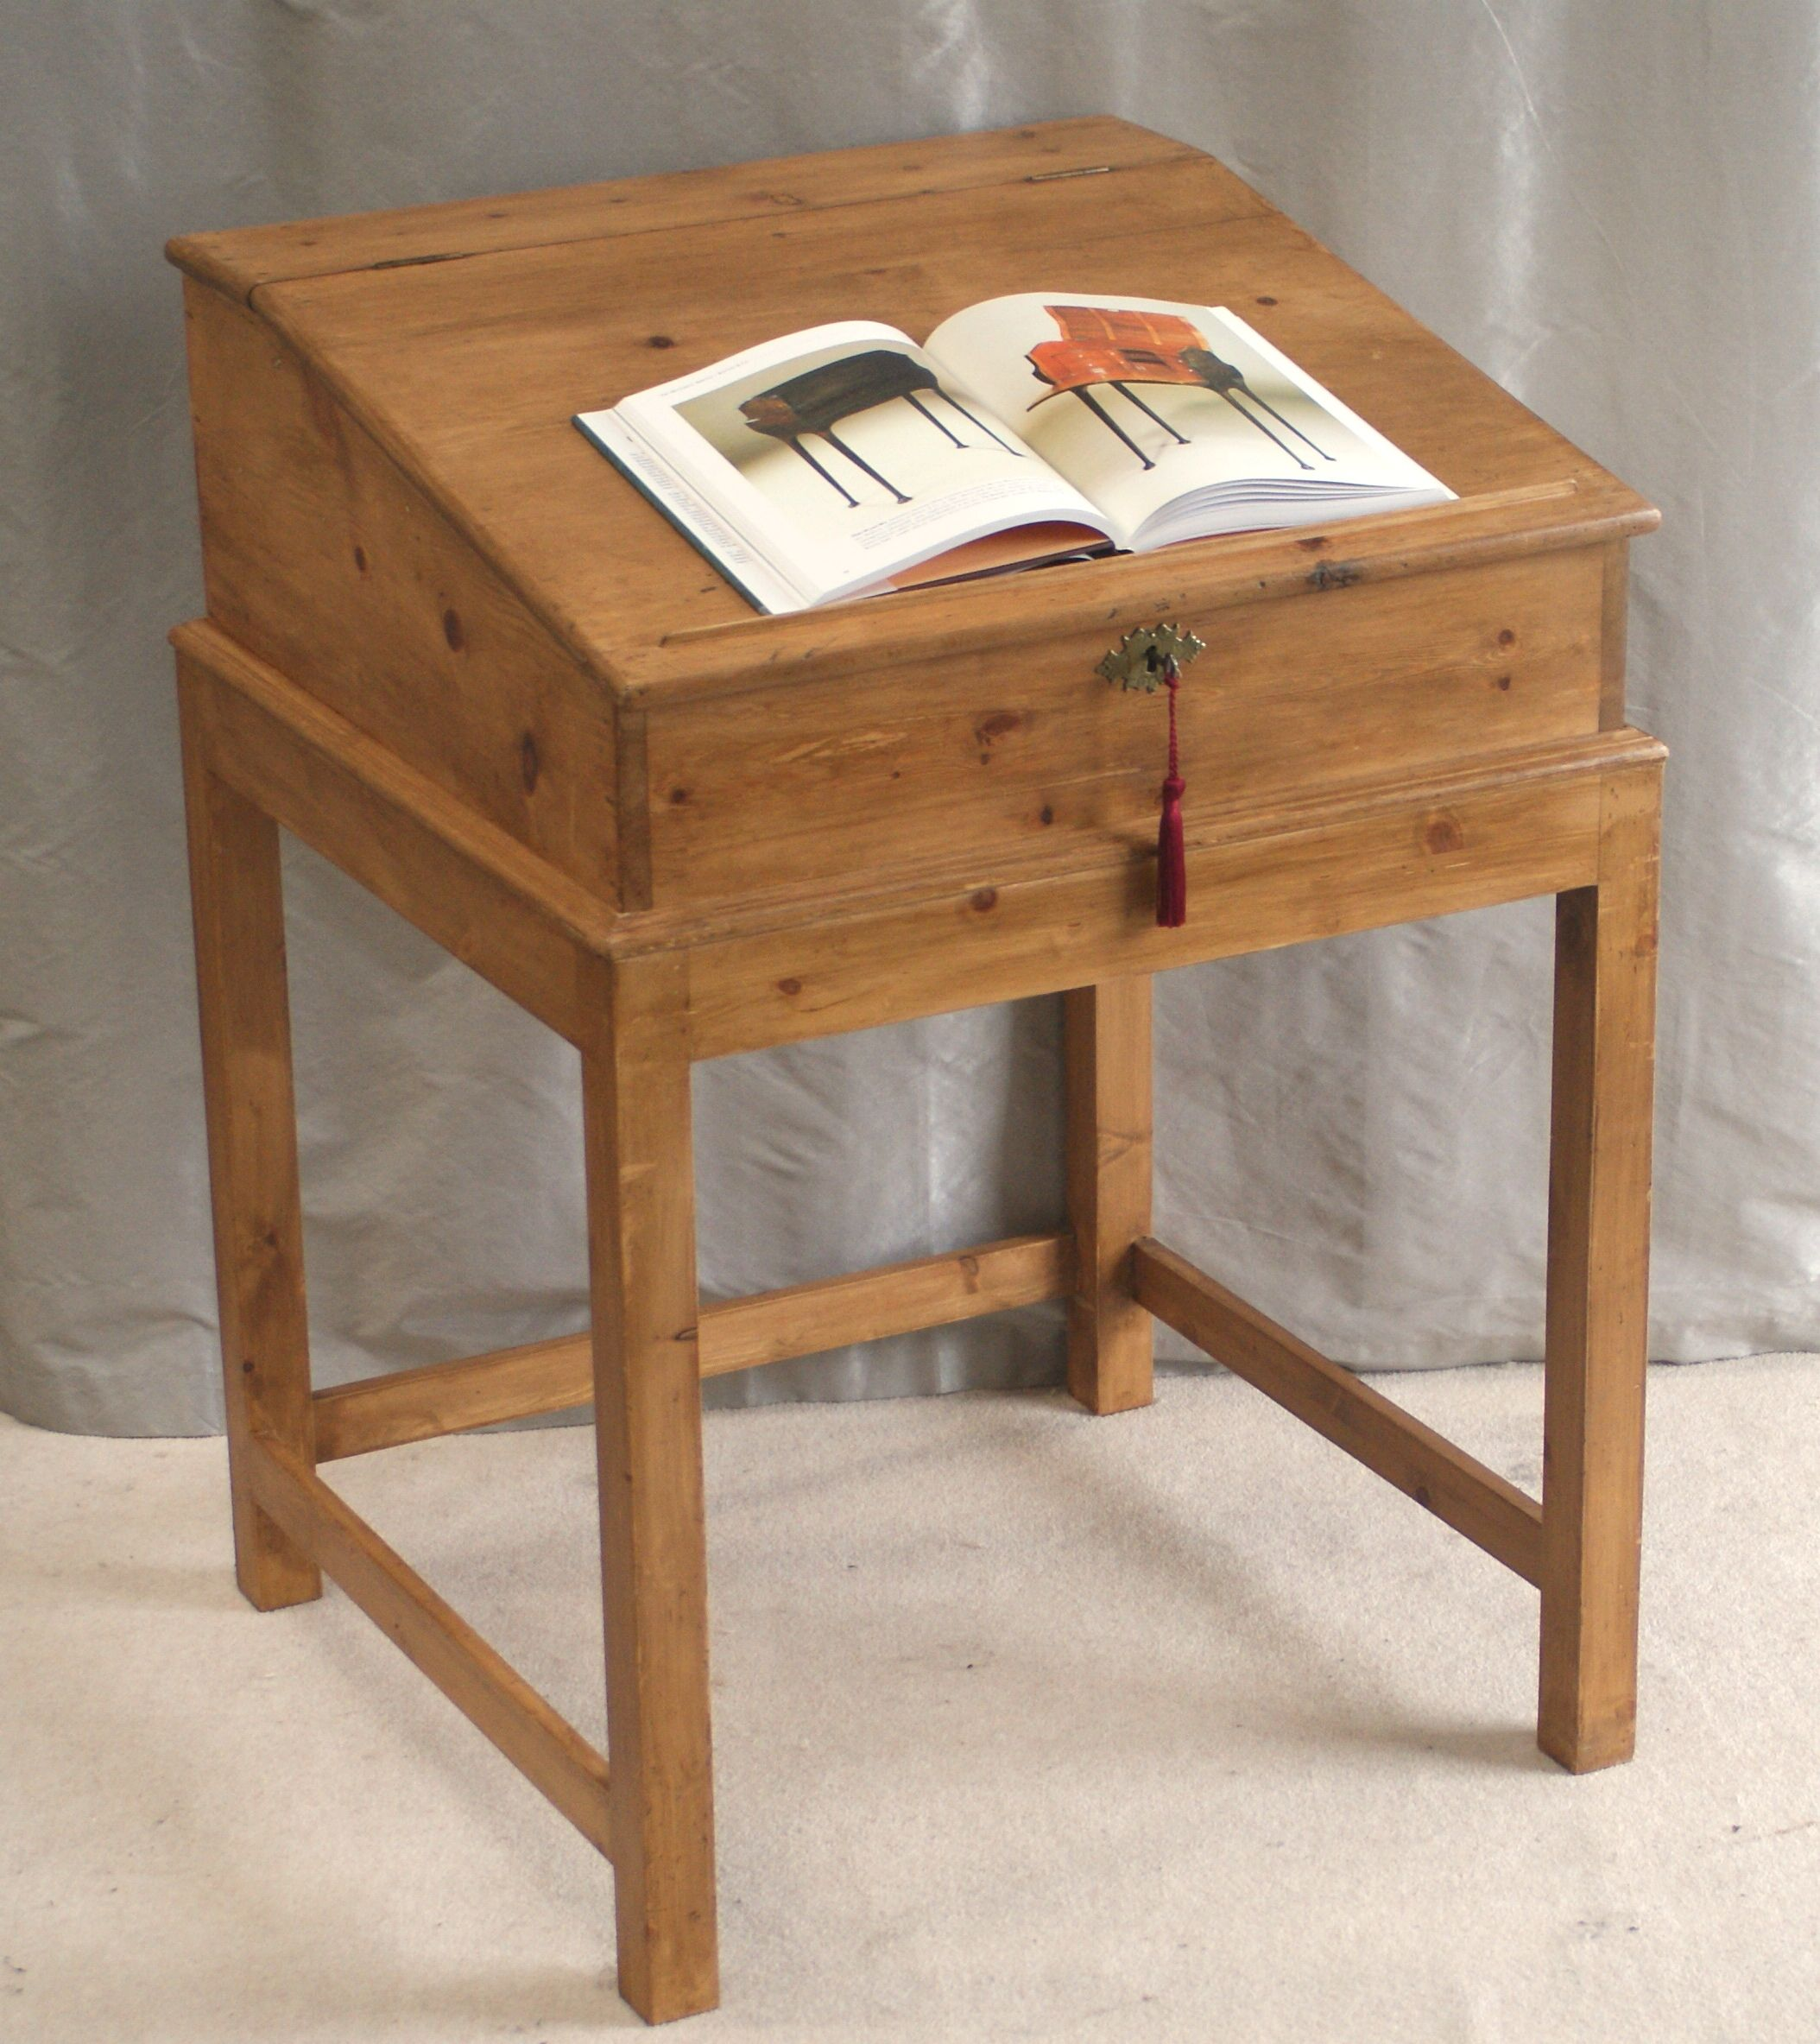 Addition union furniture pany antiques likewise union furniture pany - Victorian Antique Pine Writing Desk Also Known As A Clerks Desk Top With Slope